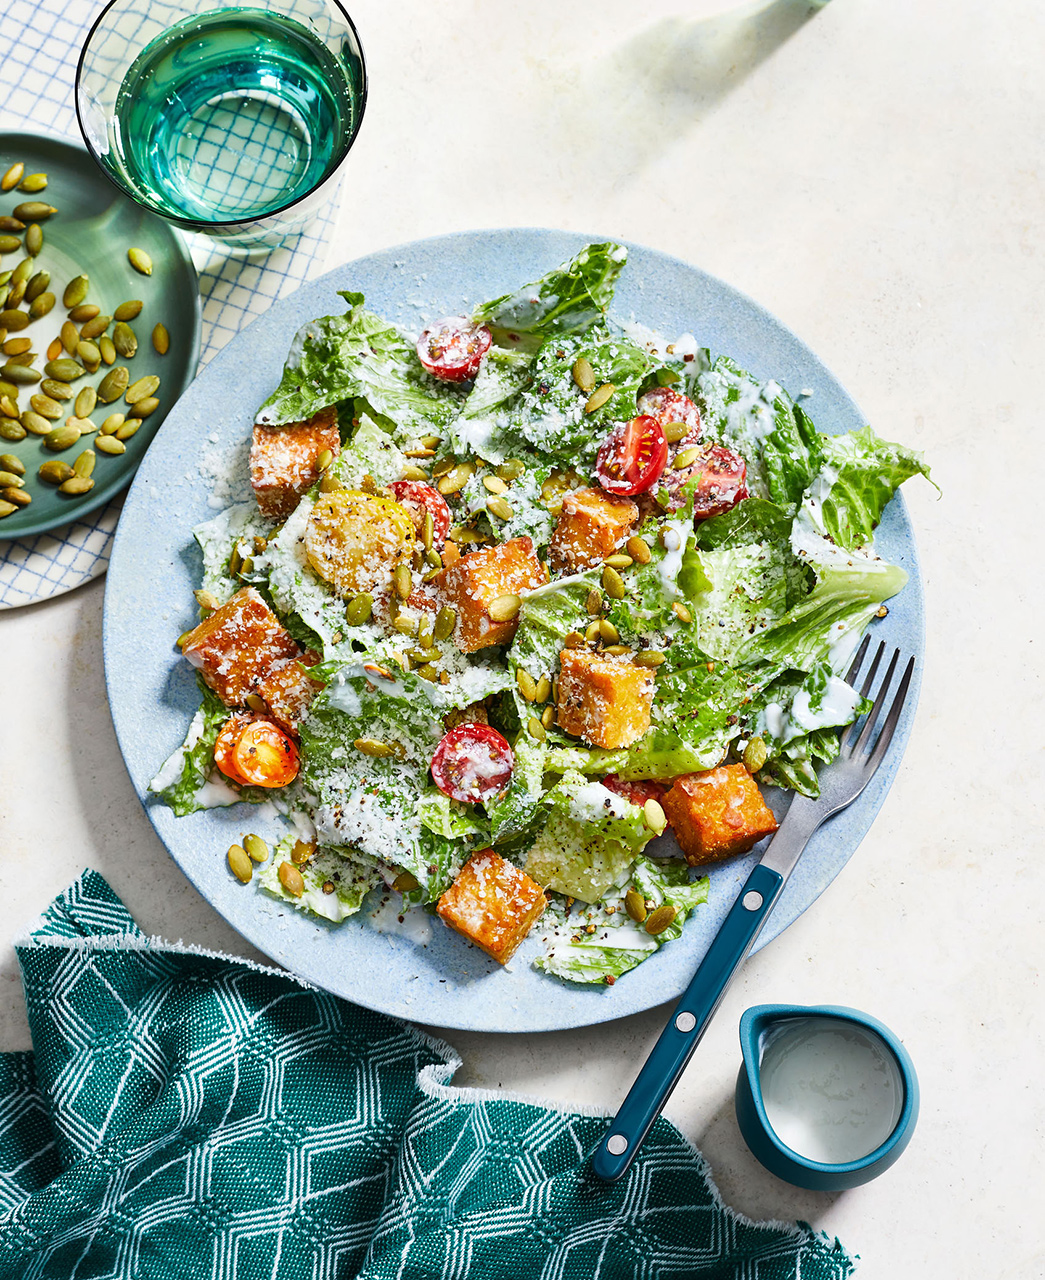 Caesar Salad With Tempeh Croutons